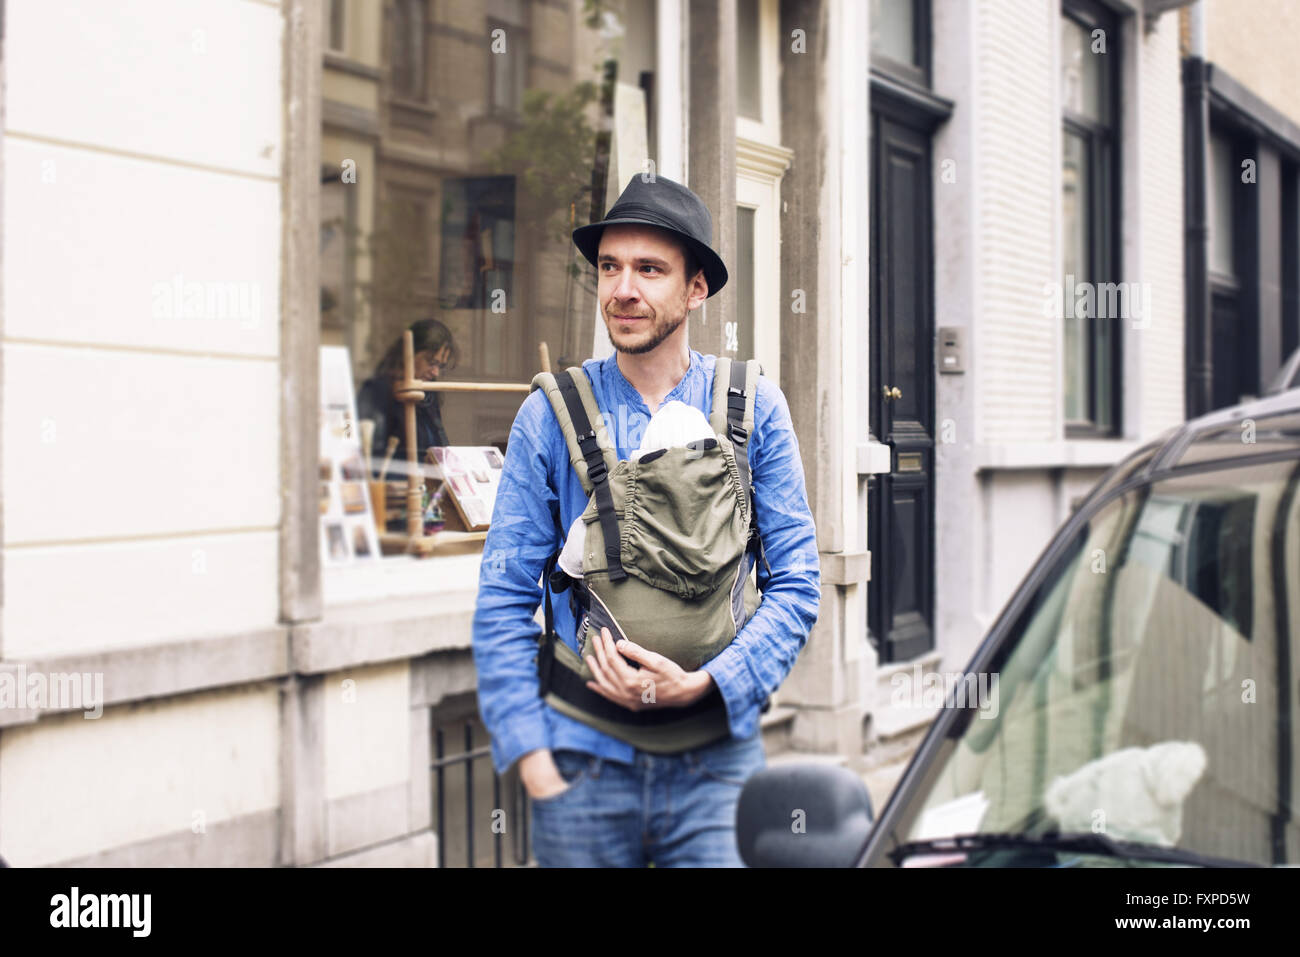 Man with baby in carrier on the move in the city - Stock Image